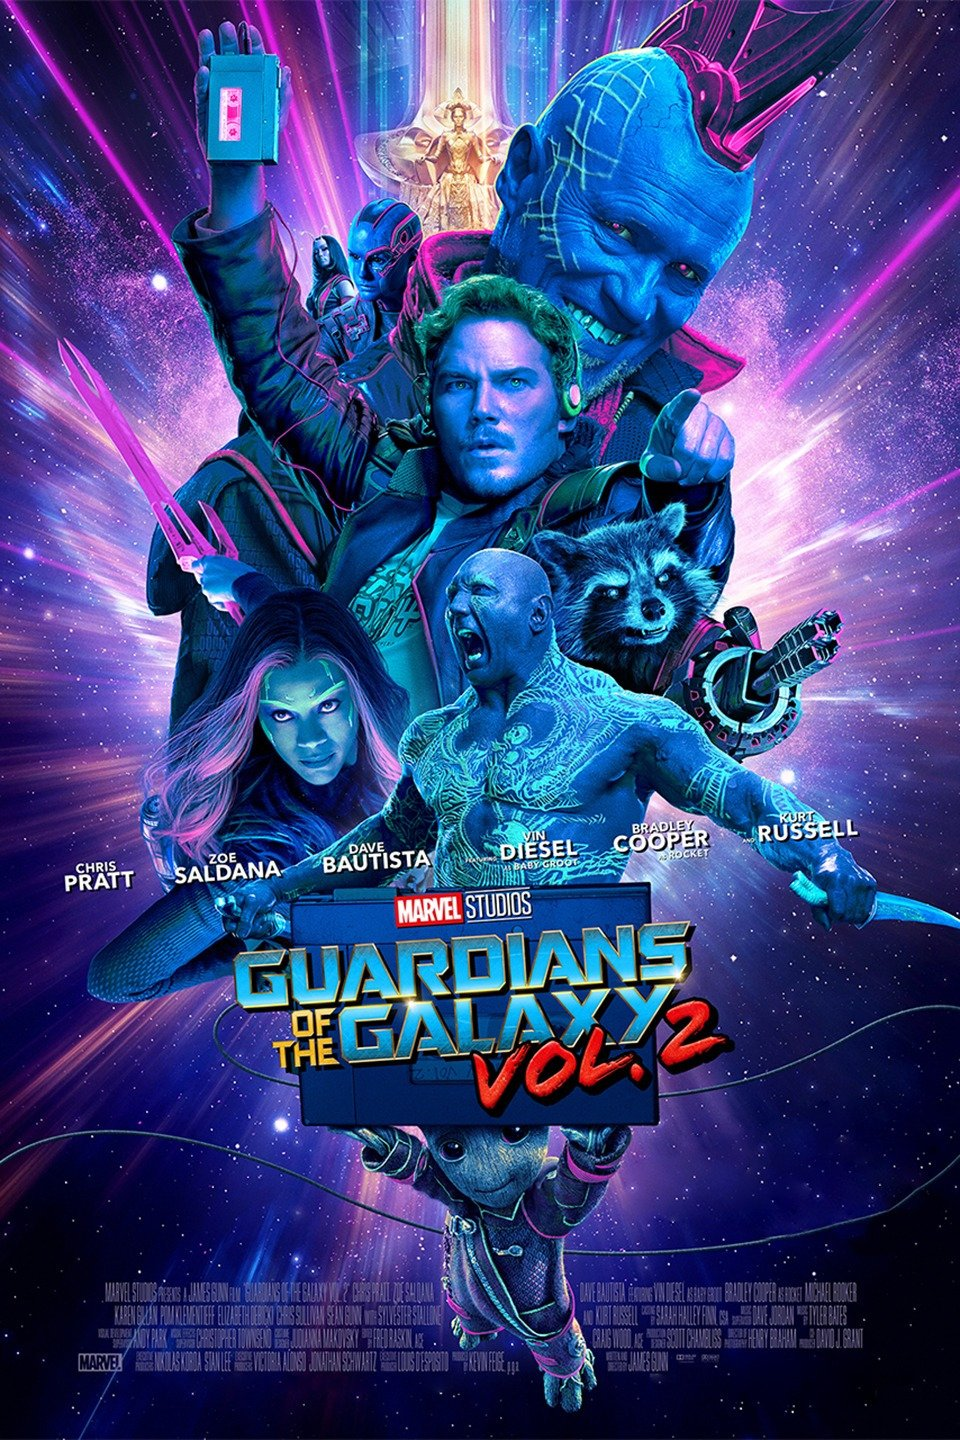 Guardians of the Galaxy Vol. 2 poster art